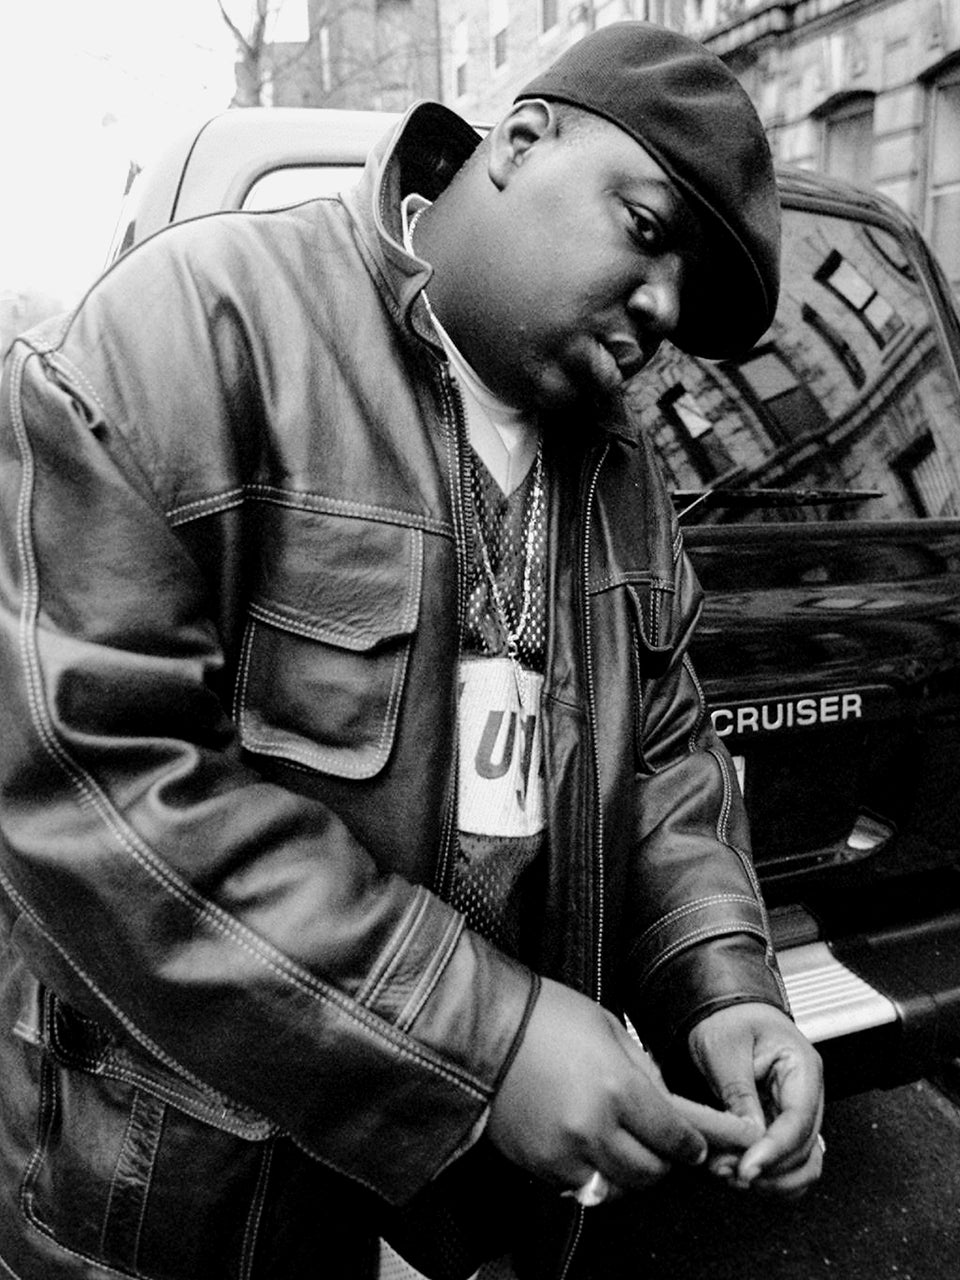 FBI Releases Notorious B.I.G.'s Murder Files to Public